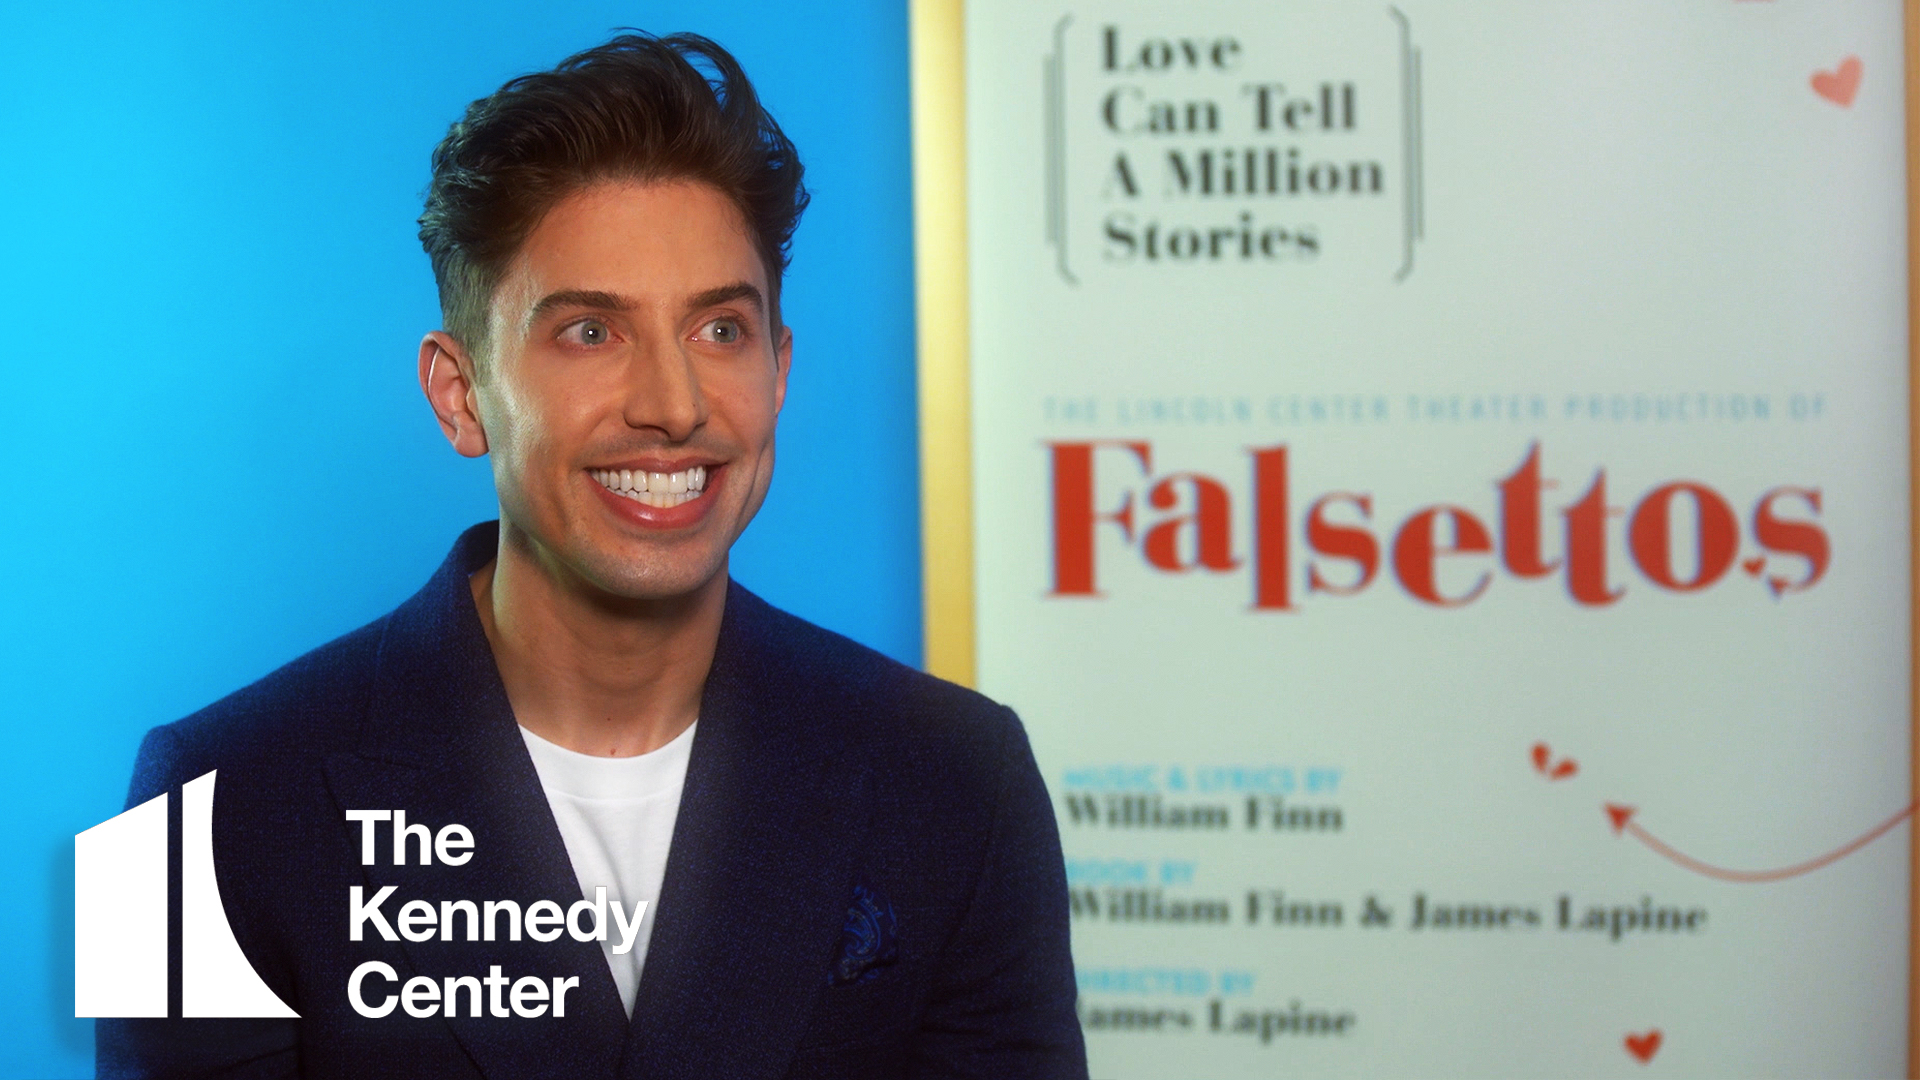 Meet Our Tight Knit Family: Nick Adams | Falsettos at The Kennedy Center